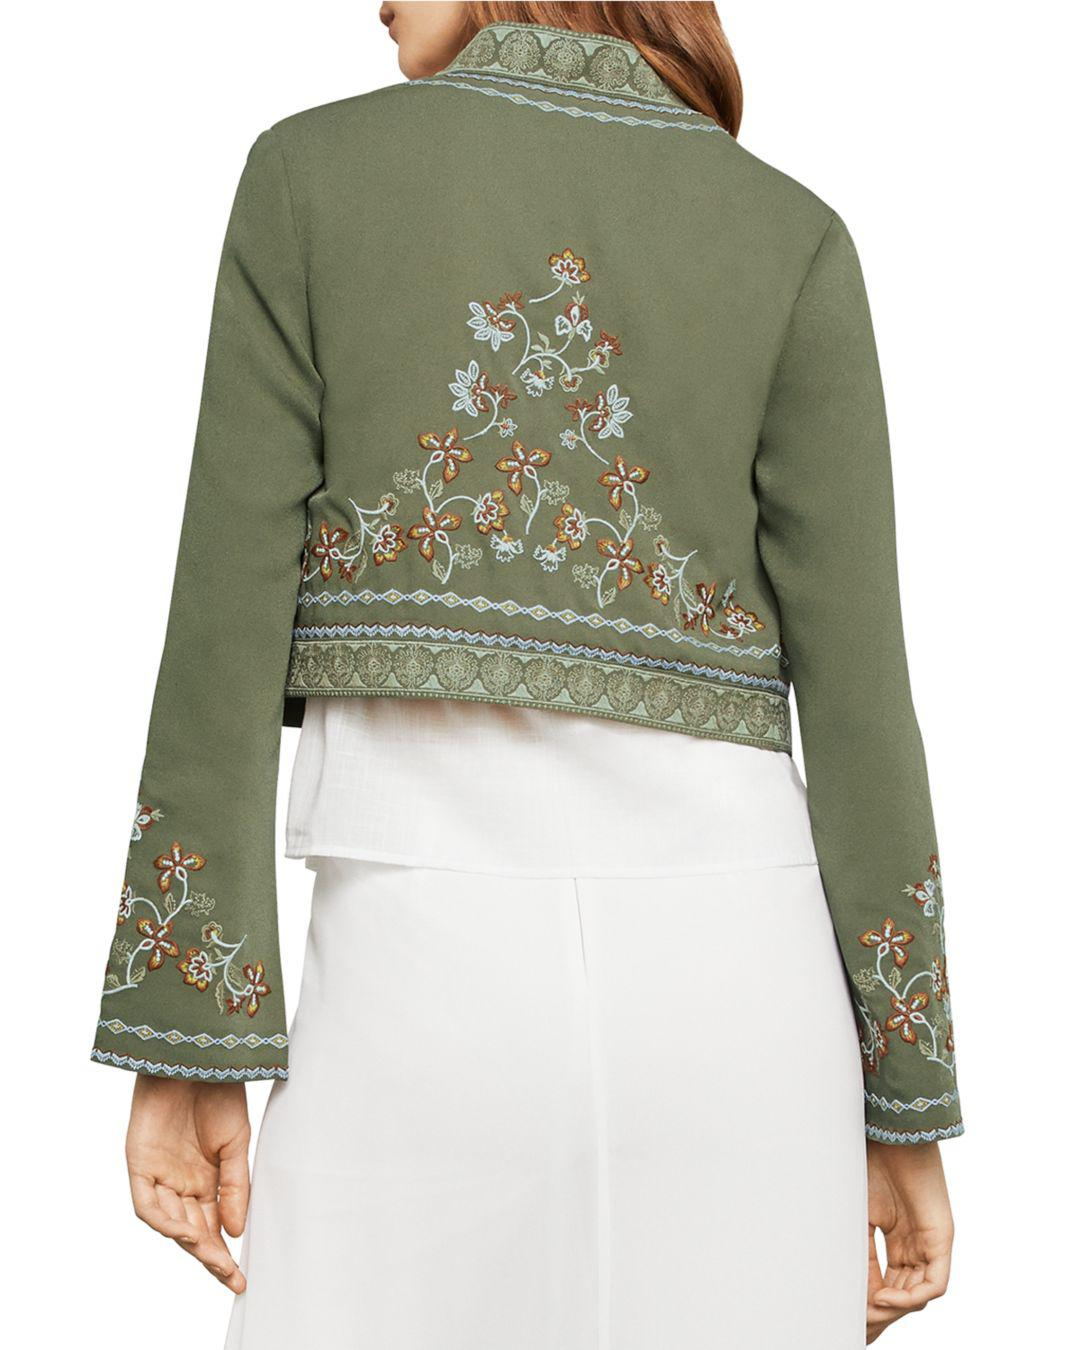 c18a3f0f5c BCBGMAXAZRIA Floral Embroidered Cropped Jacket in Green - Lyst